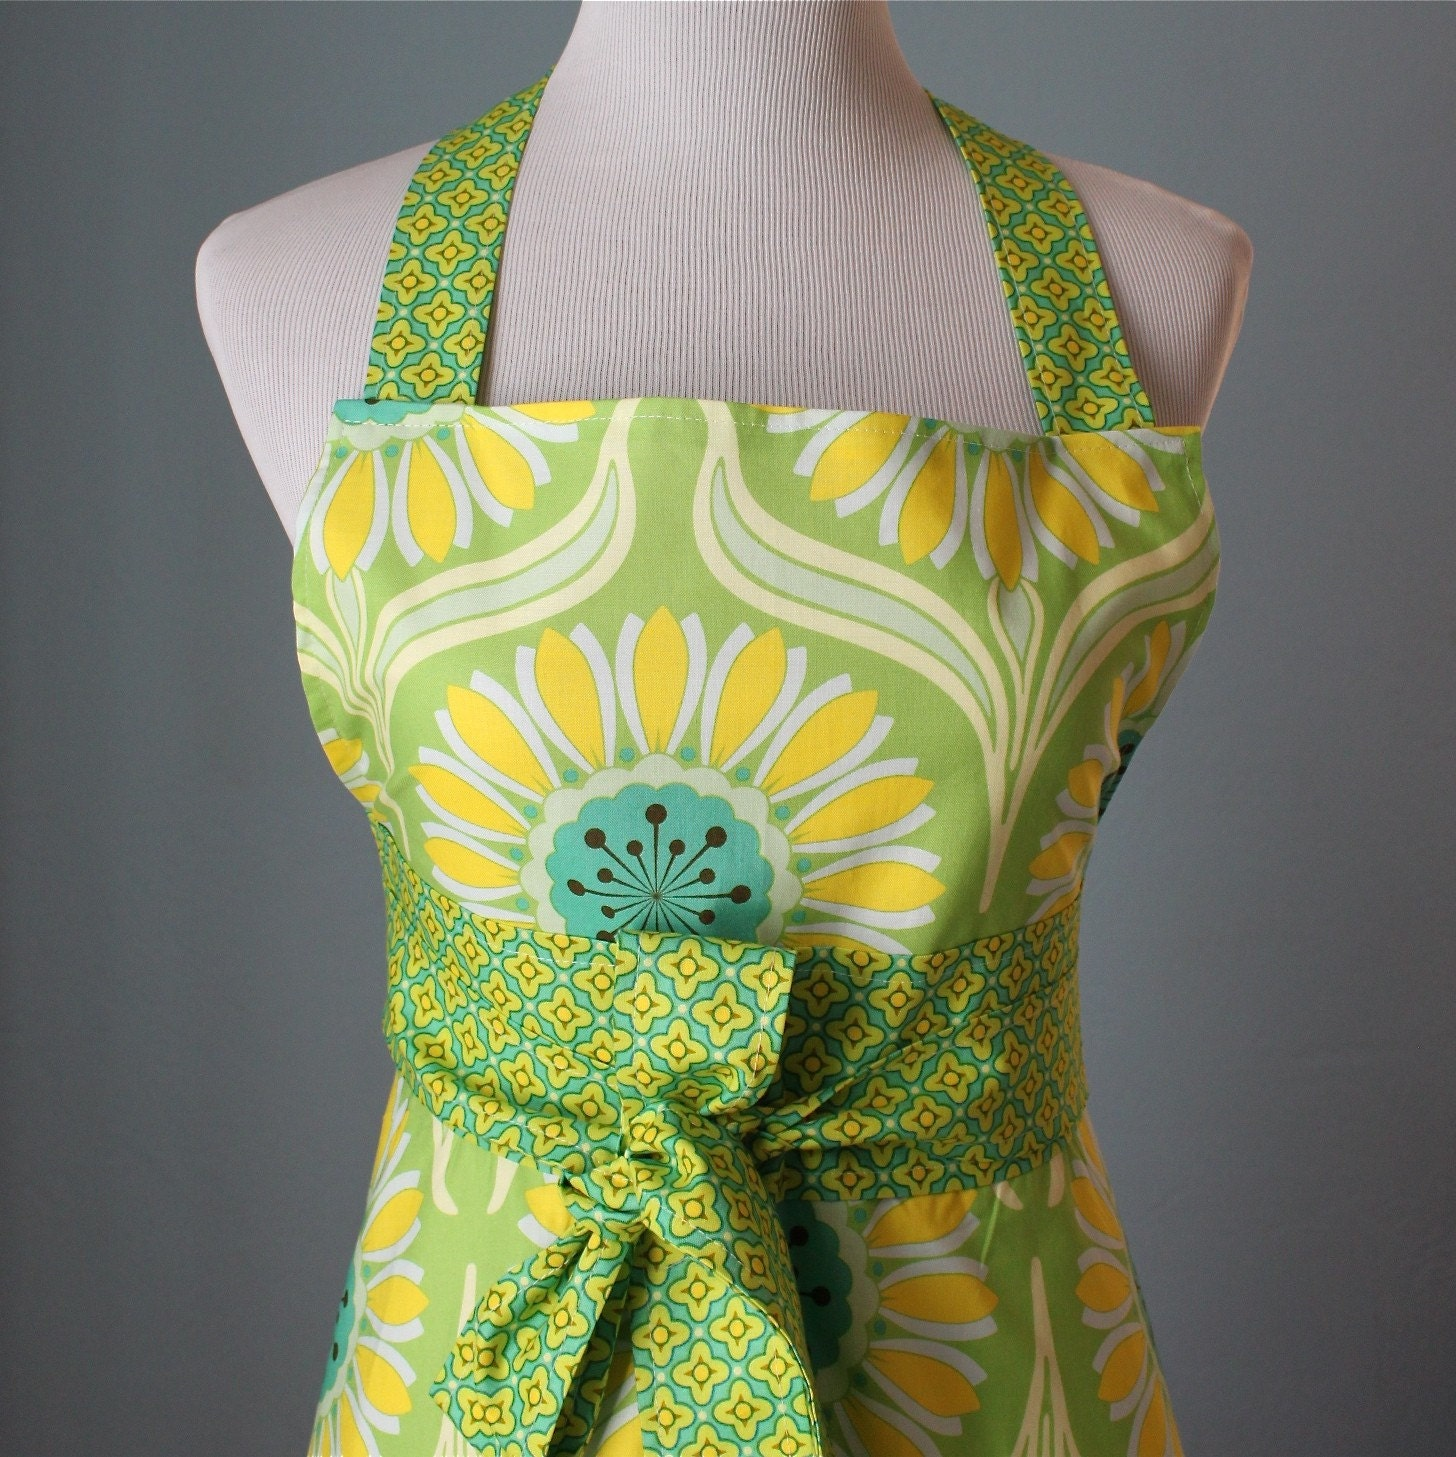 Pop Daisy Full Apron with Heather Bailey Fabric for Women